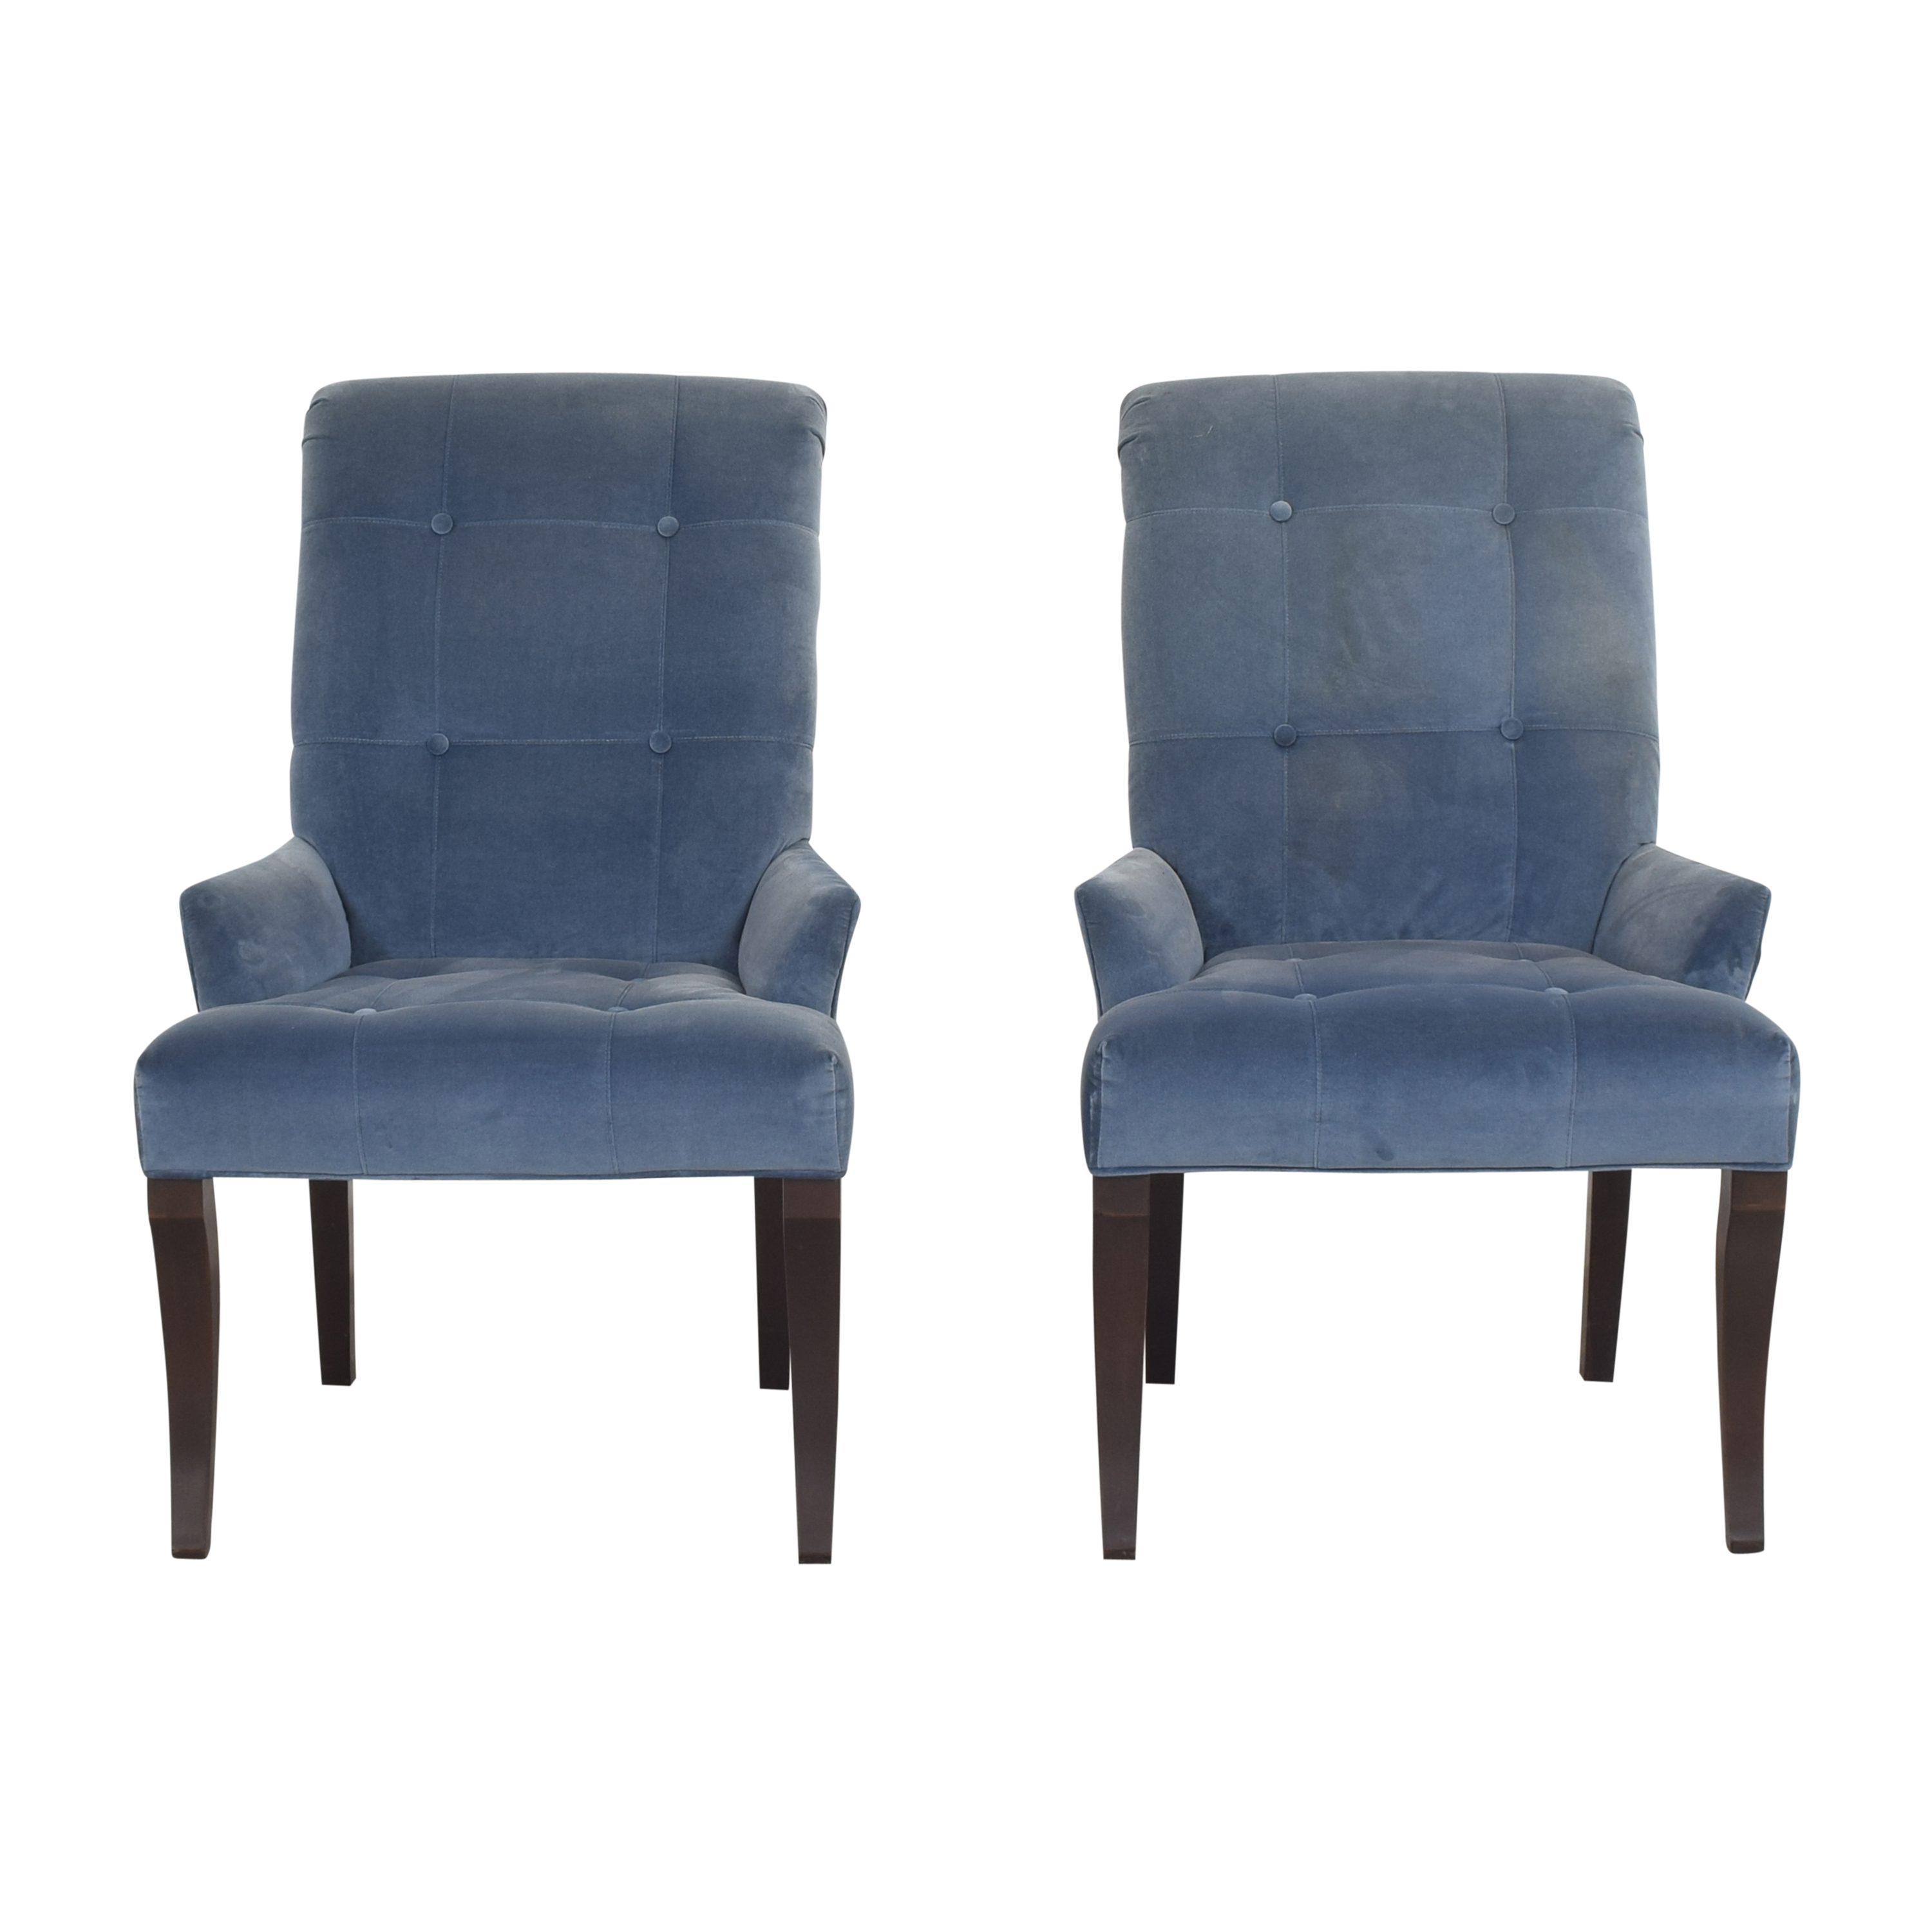 Ethan Allen Ethan Allen Verlaine Dining Chairs dimensions